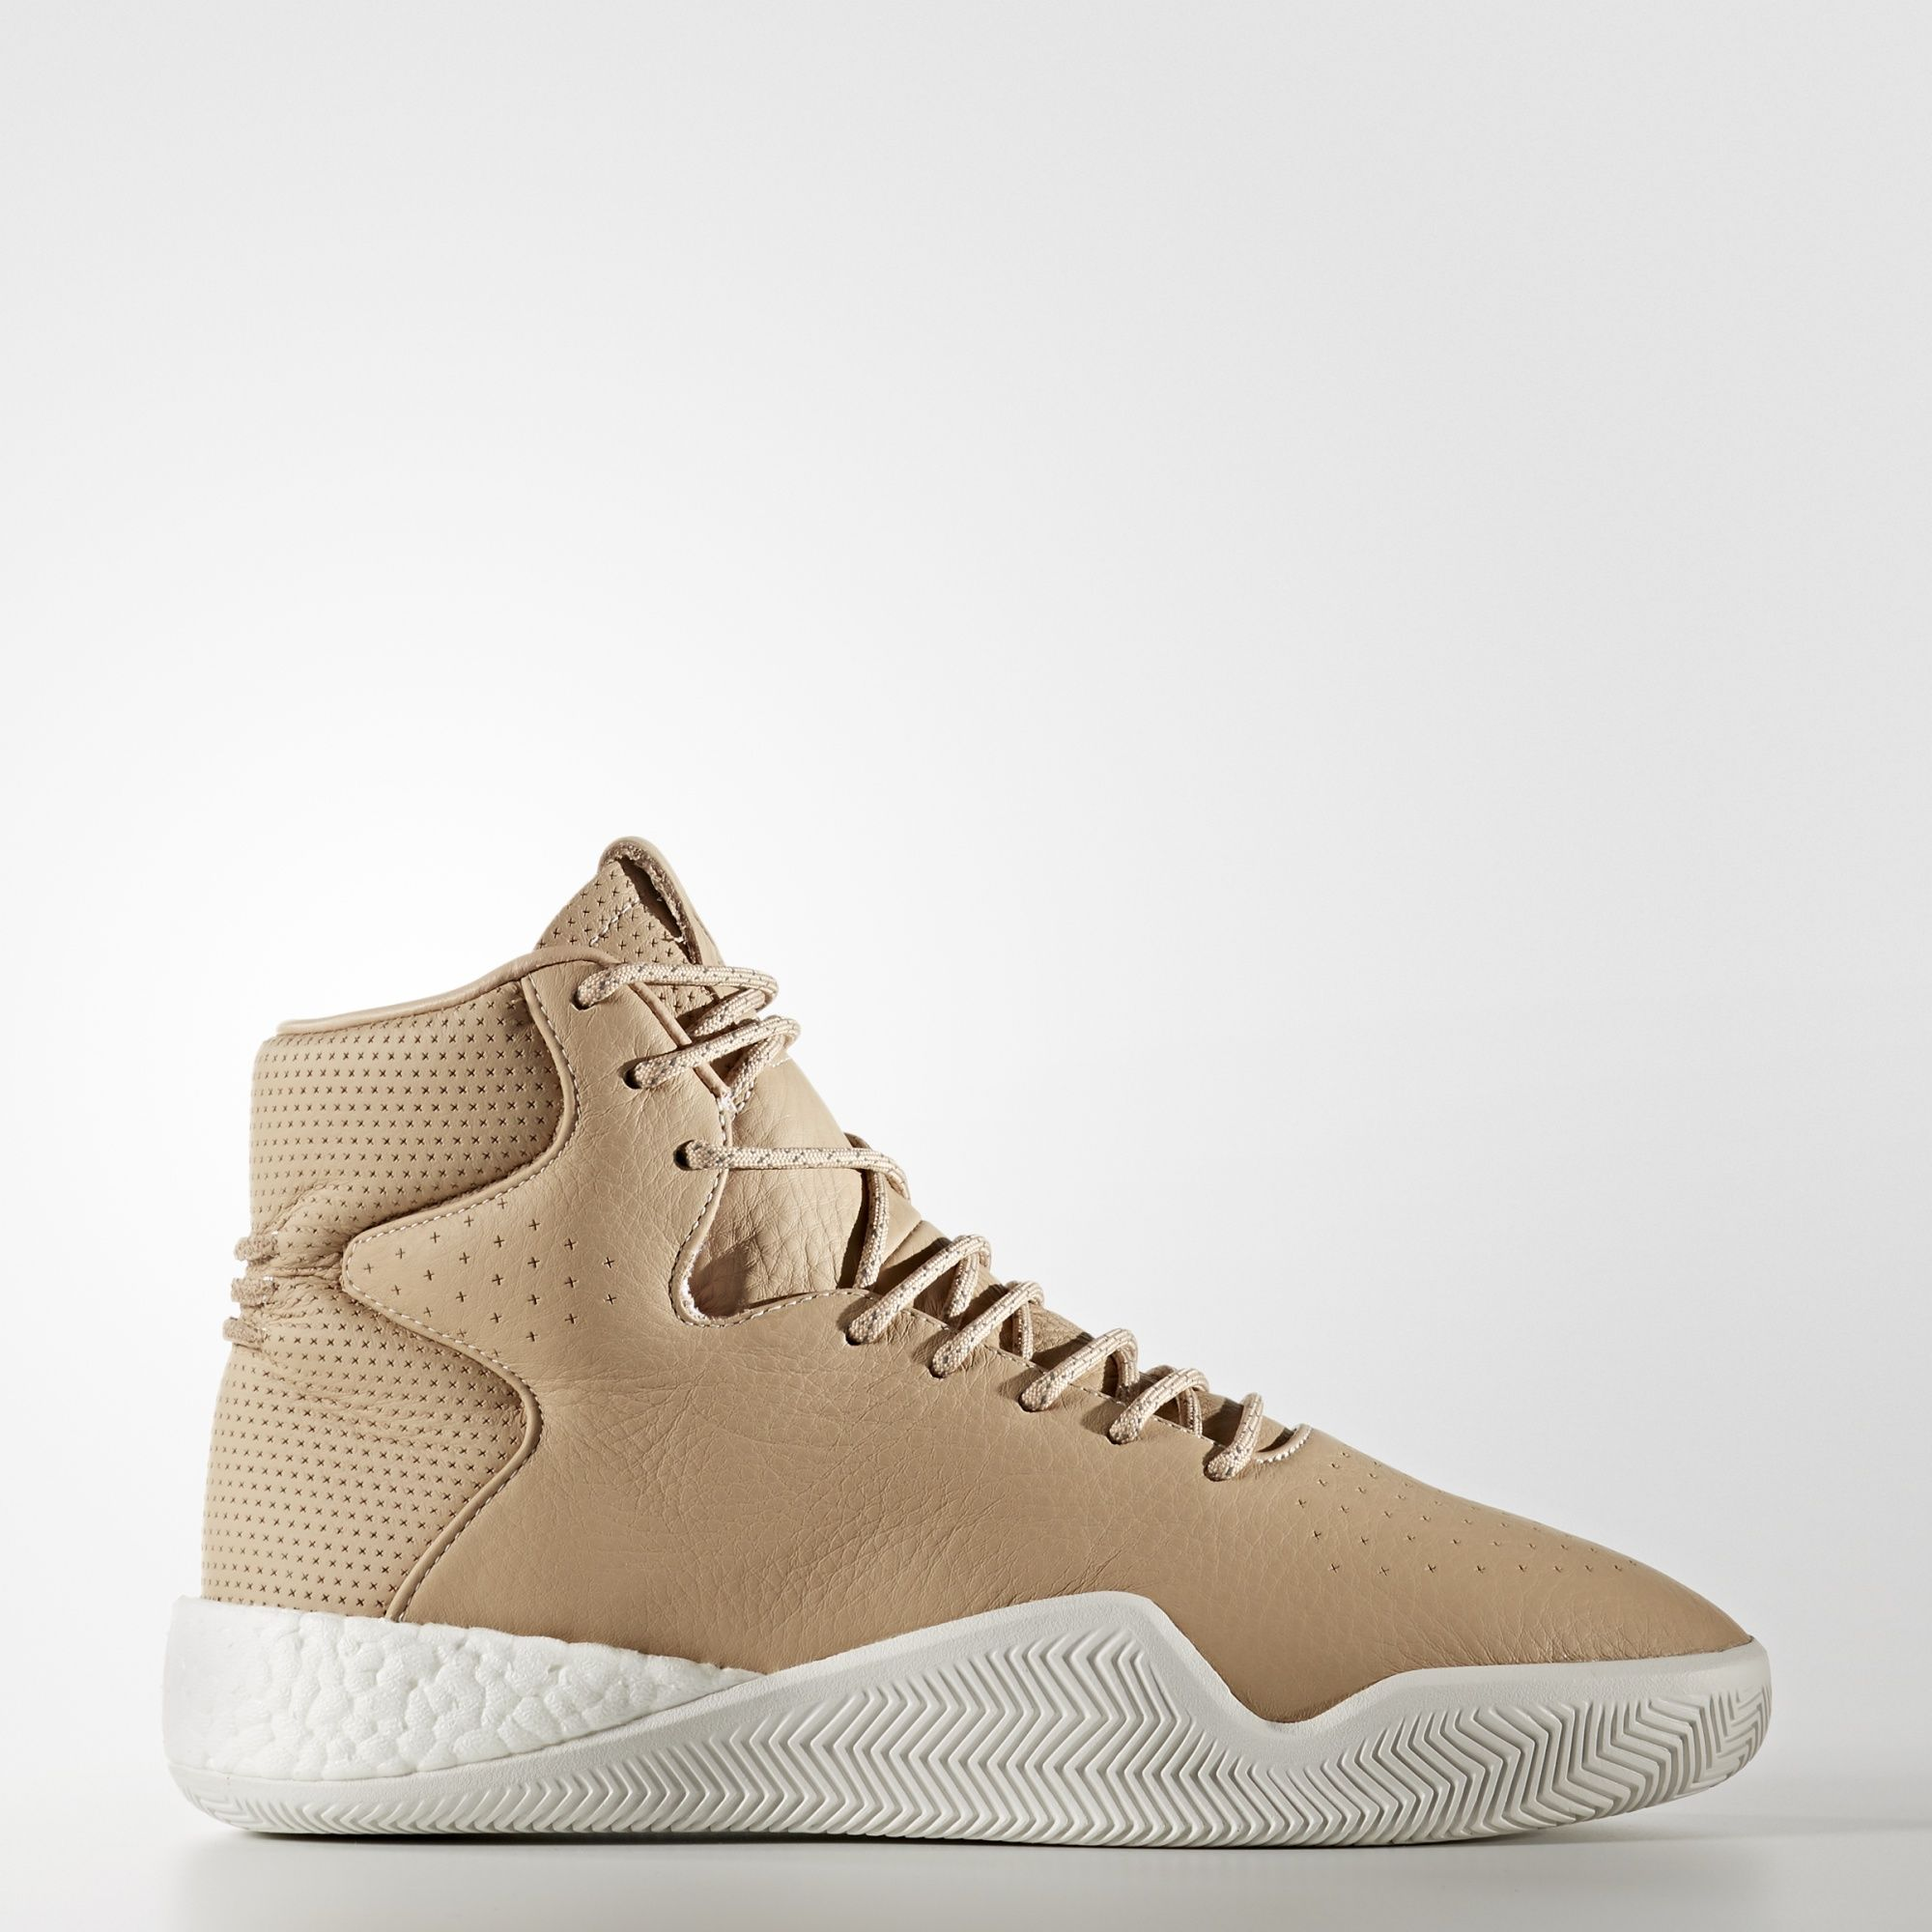 brand new b03fd 2ff64 Shoe Of The Week: Adidas Tubular Instinct Boost Shoes | XL Tribe